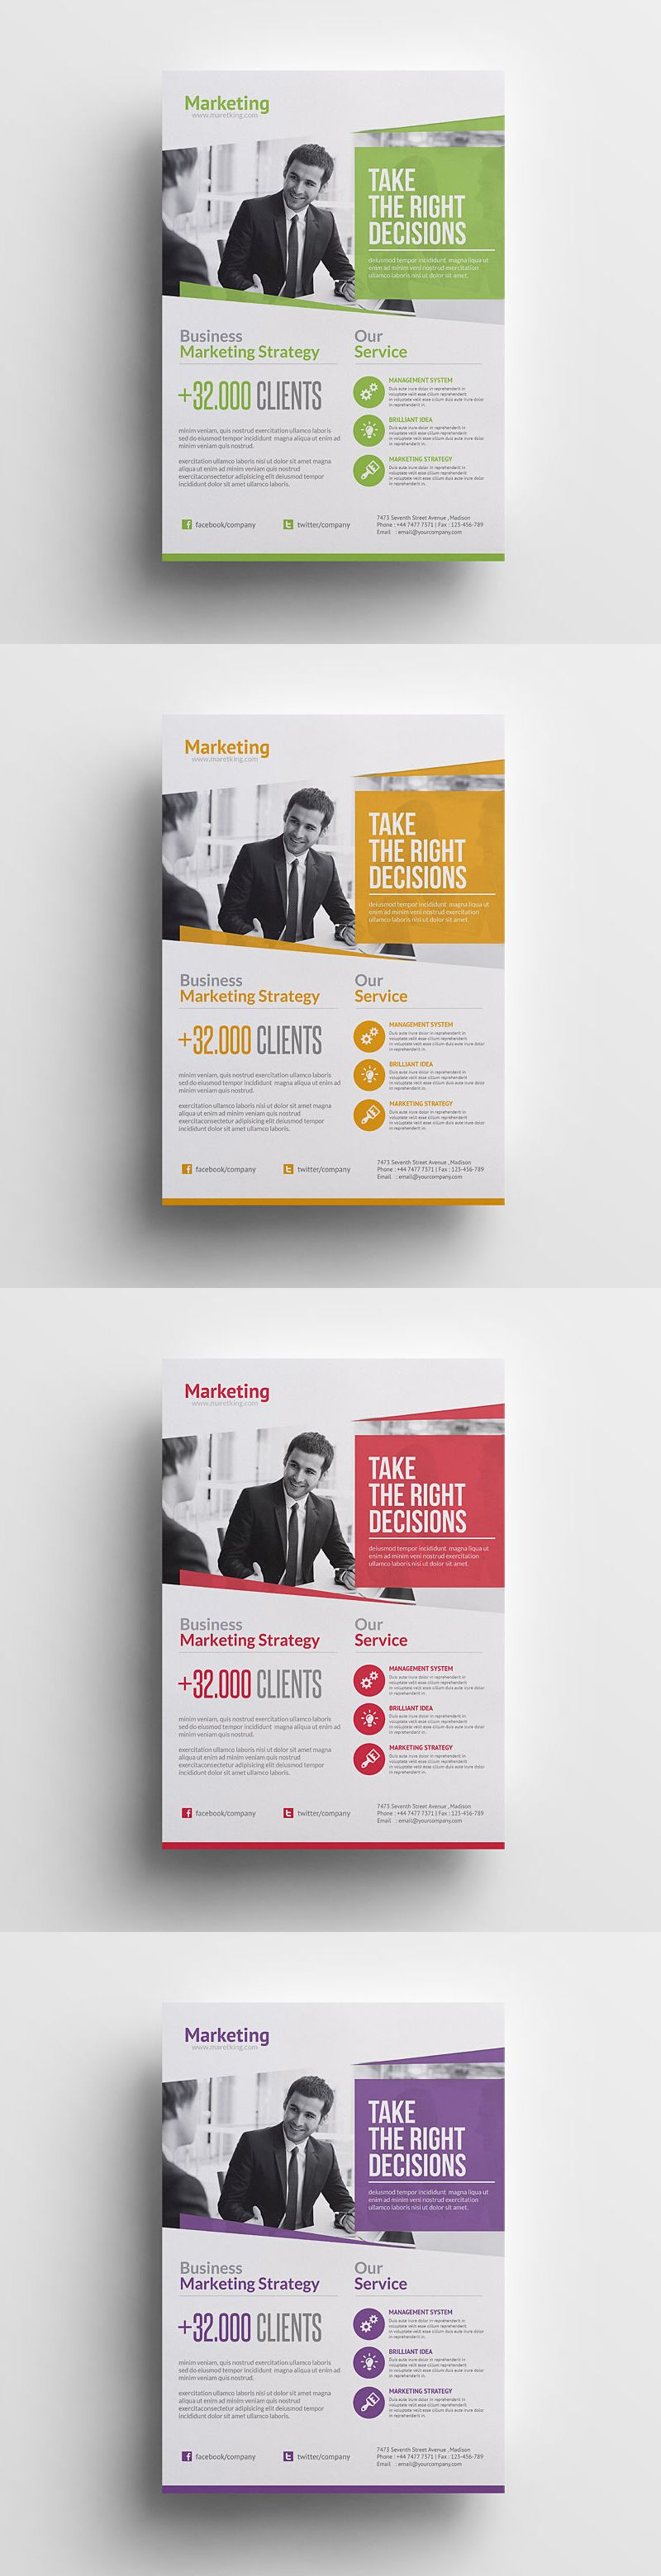 marketing business flyer template psd flyer templates marketing business flyer template psd